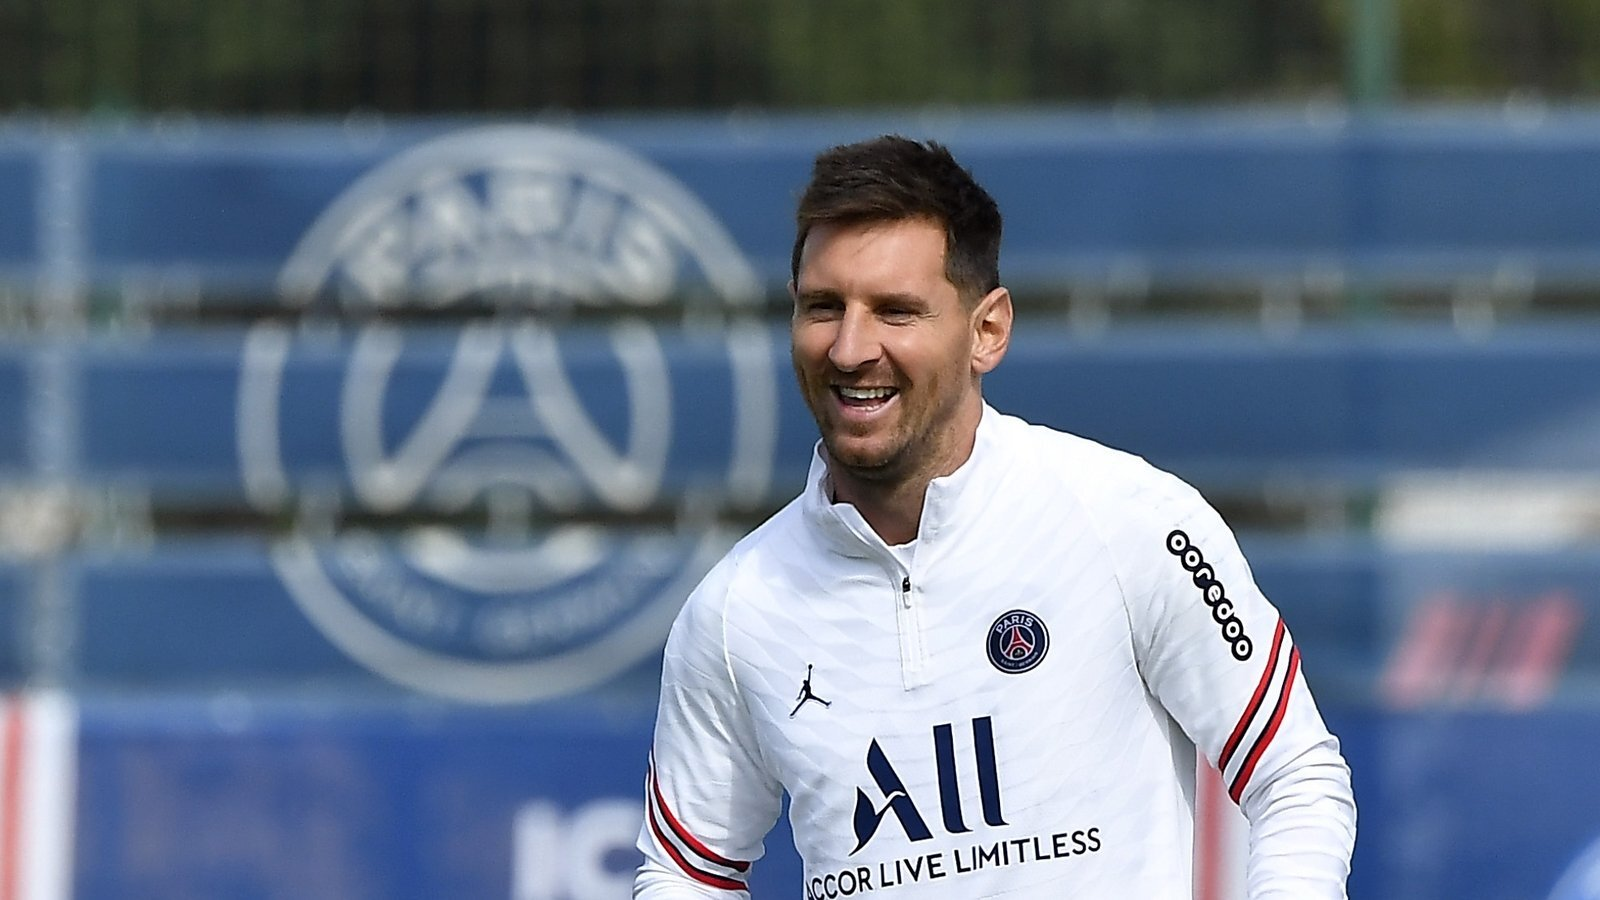 Messi made PSG debut against Reims in Ligue 1